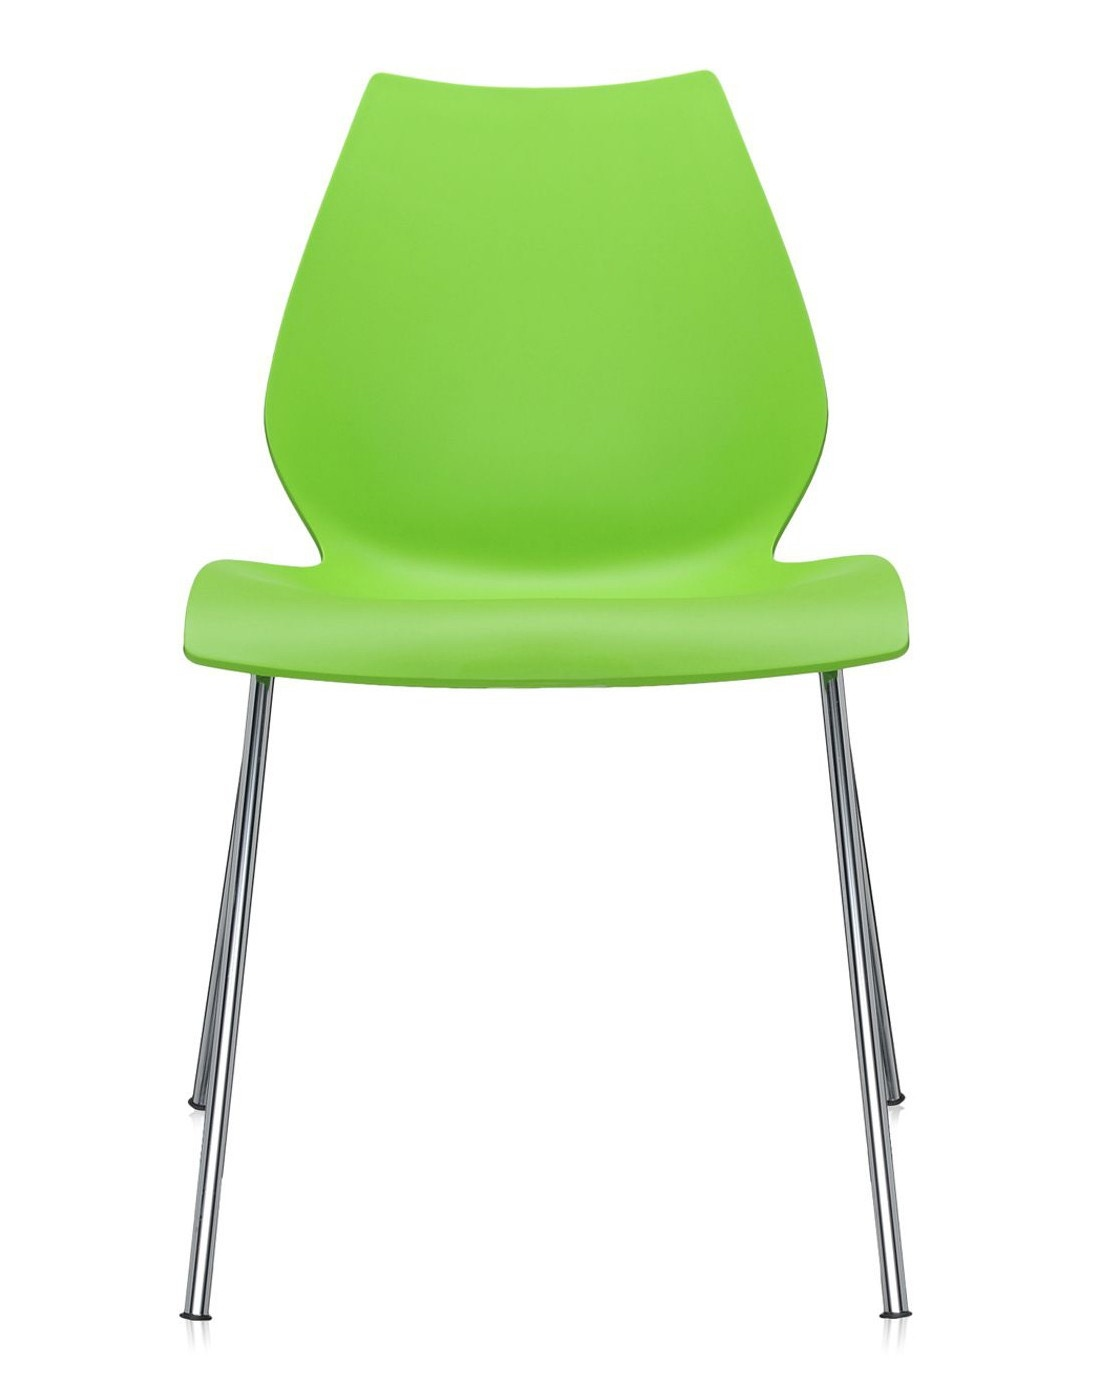 Kartell Maui Armless Chair (Priced Each, Sold in Sets of 4)